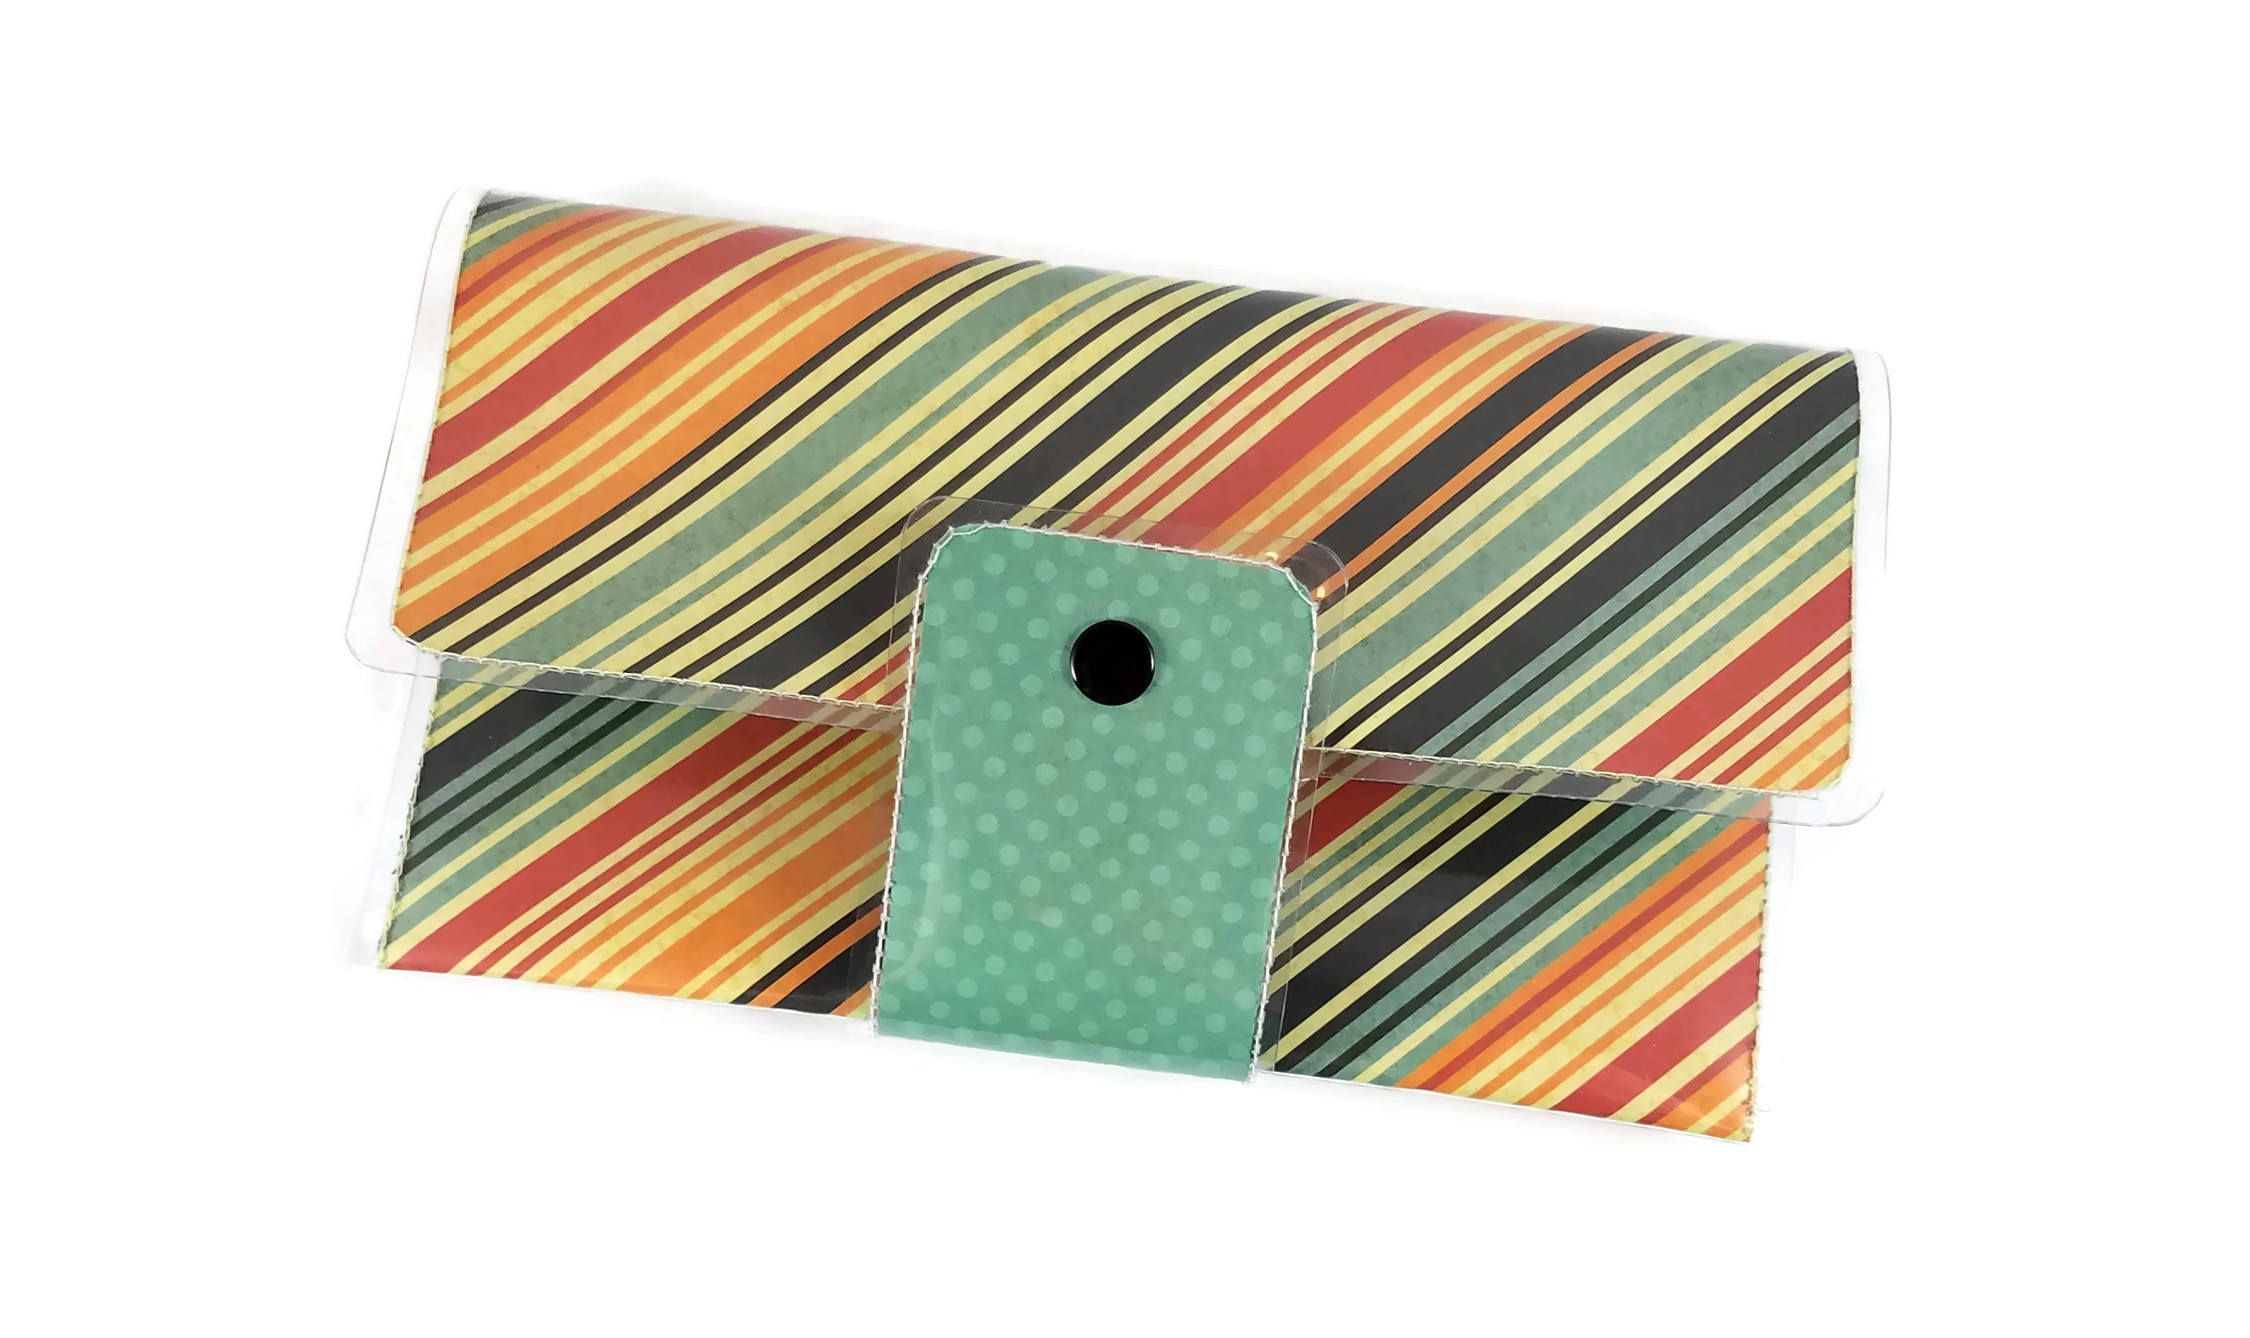 7fd4310cd9 Vintage Autumn Collection-cell phone wallet-iPhone 7 wallet-wallet  woman-fall lover-vinyl wallet-snap wallet-cell phone holder-vintage gift by  ...